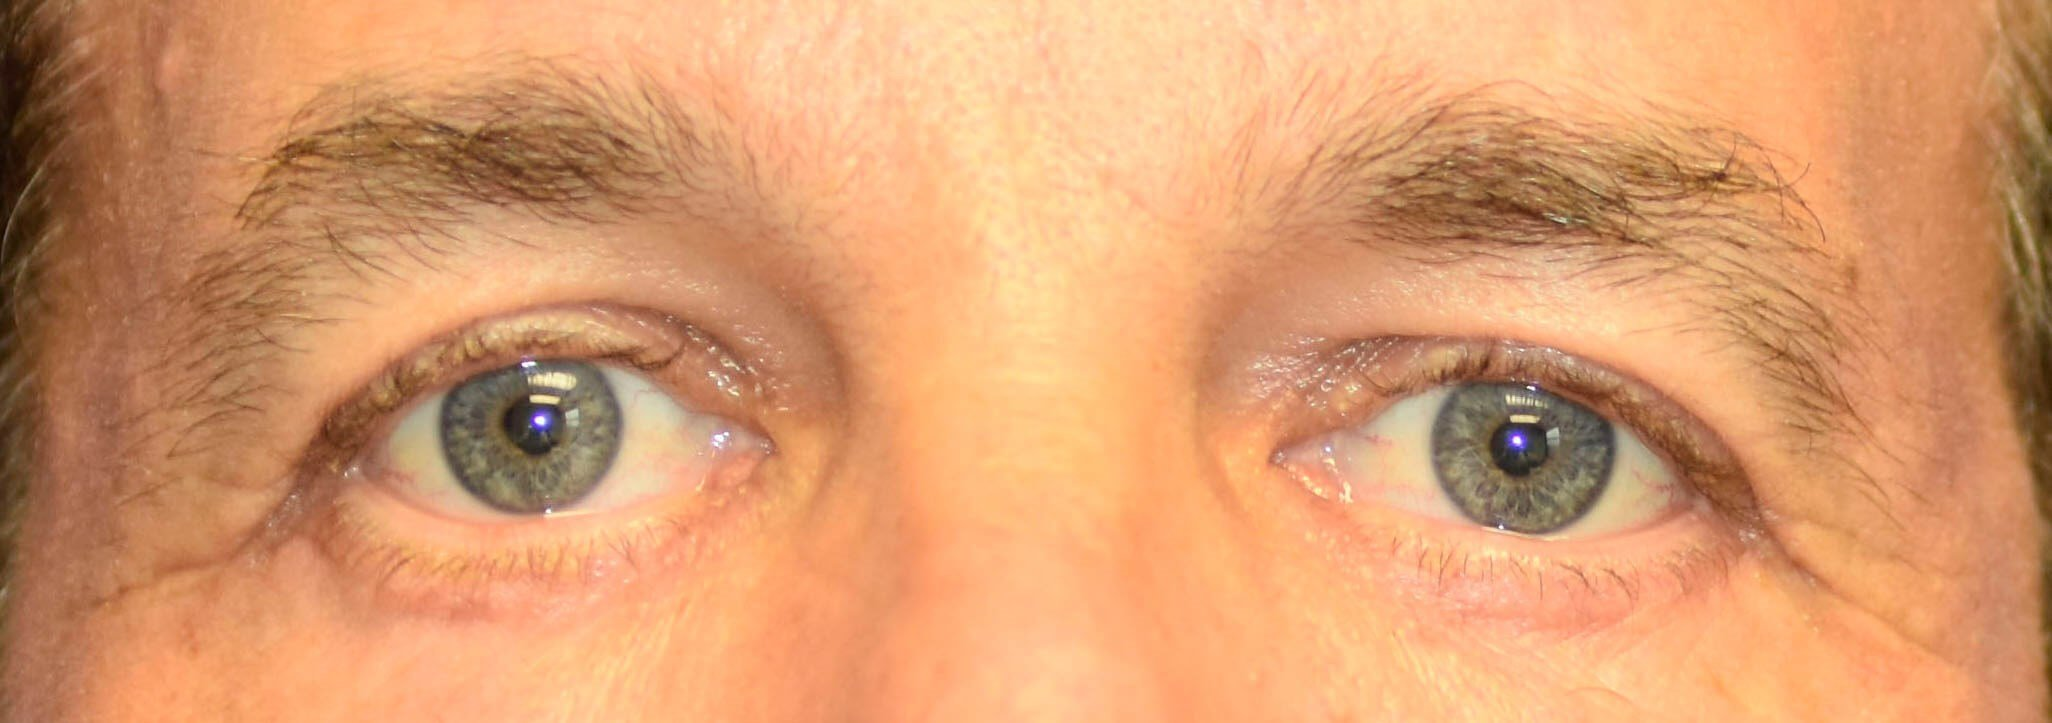 Eyelid surgery Oklahoma After